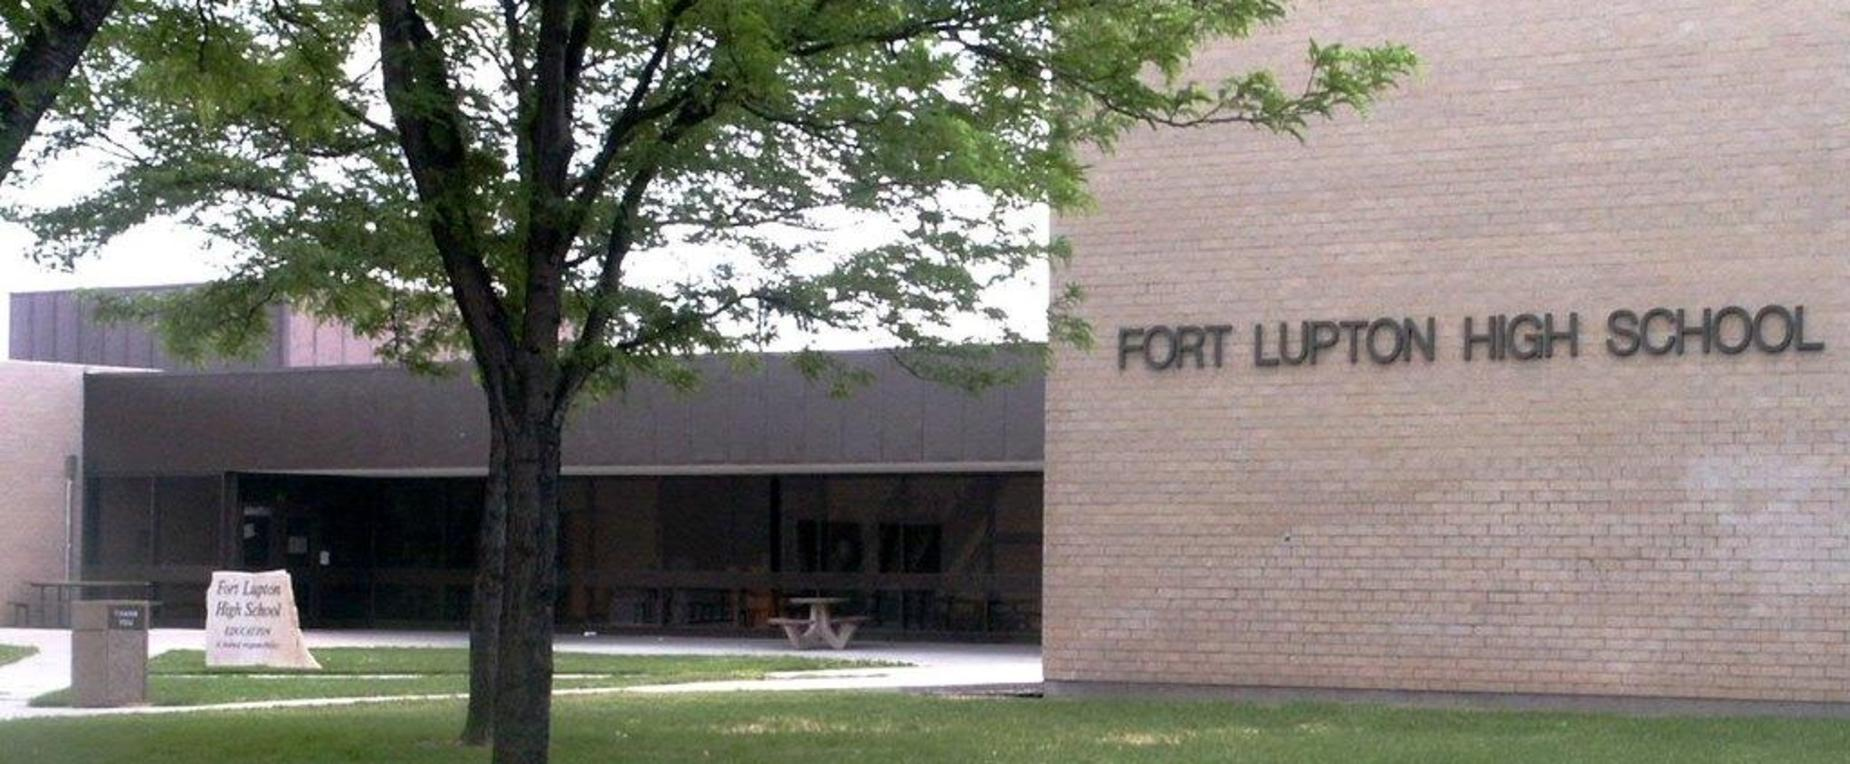 External view of Ft. Lupton High School